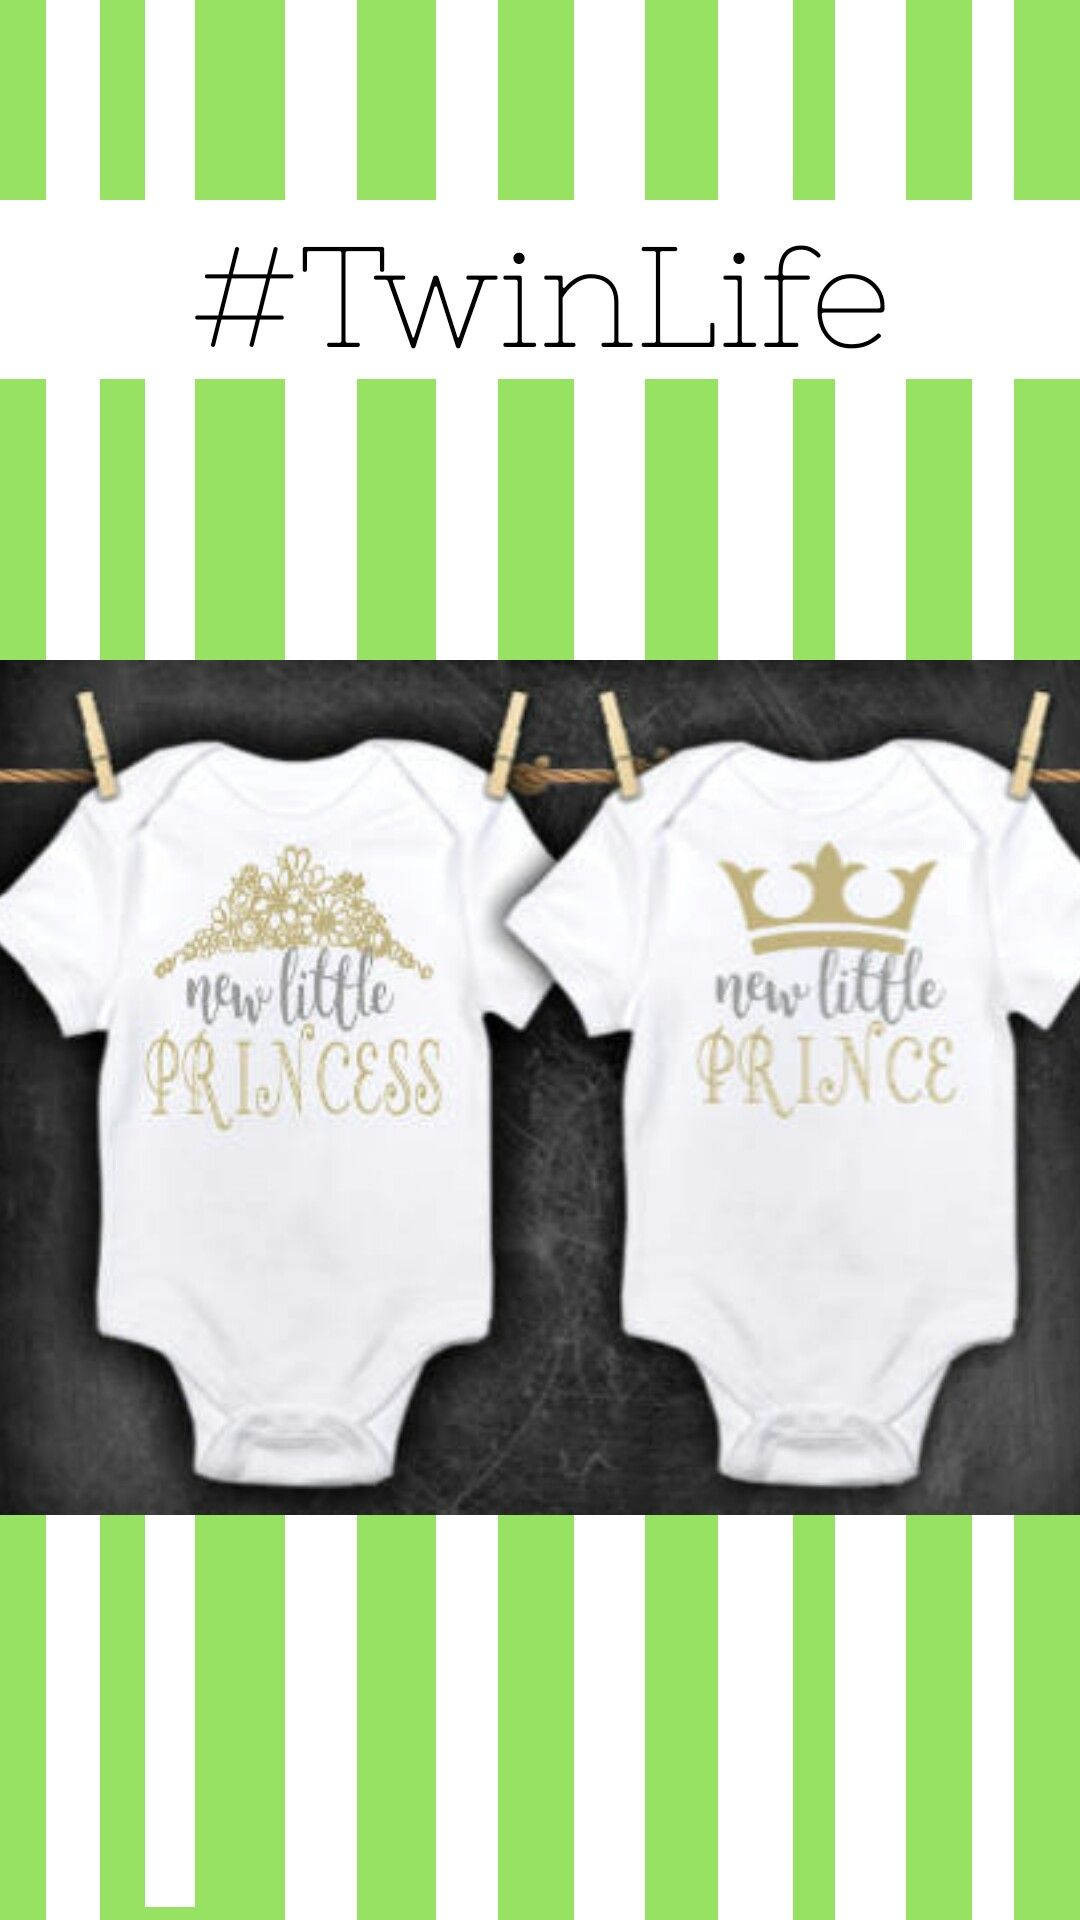 aa6da66033012 TWIN OUTFITS, Boy girl twin clothes, prince and princess outfit ...